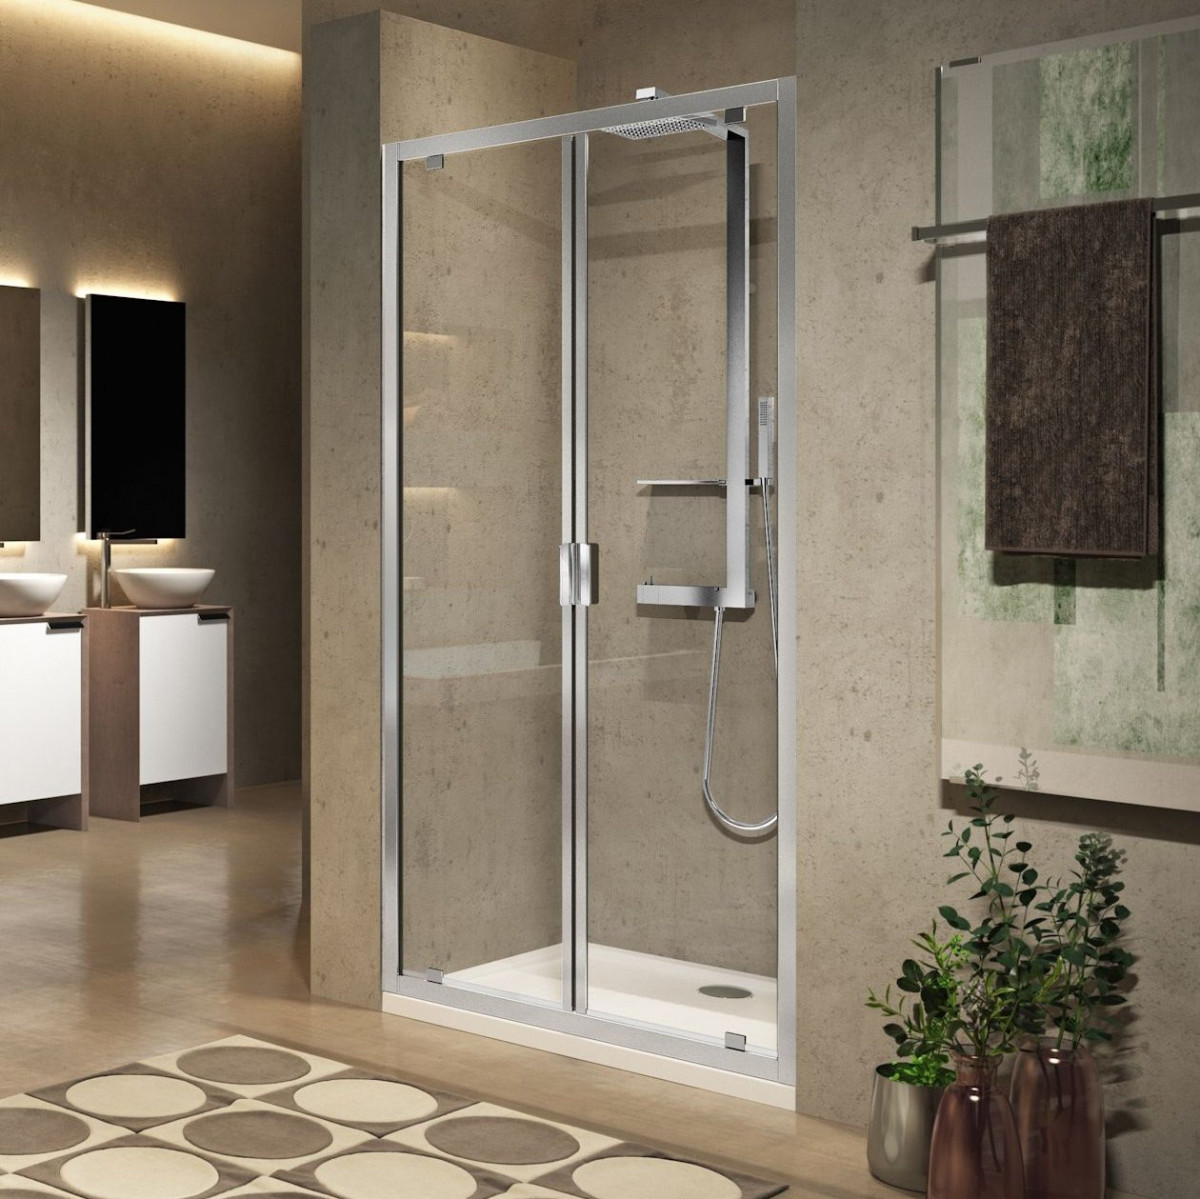 Type of shower Shower Head Novellini Lunes 20 Saloon Type Shower Door 900mm Pinterest Novellini Lunes 20 Saloon Type Shower Door 900mm Lunb841k